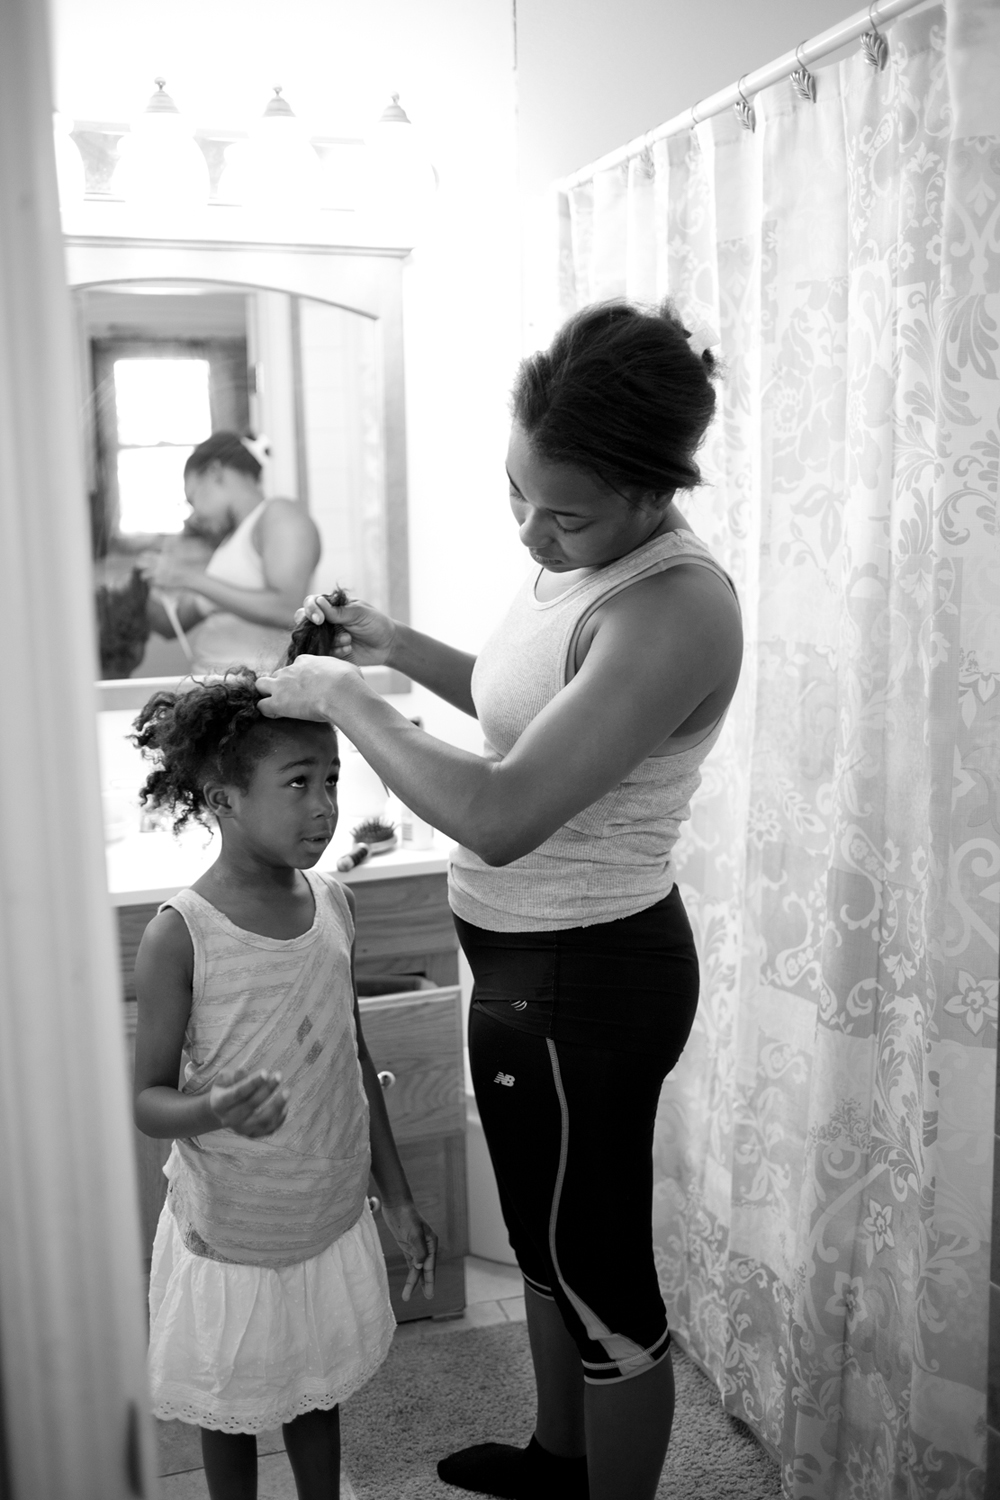 Former foster child, Dee St. Franc, 23, works two jobs to support herself and daughter, Azariah. During the day Dee helps other foster youth prepare for their future in Providence, RI. At night she works with elderly patients as a nurse's aide.